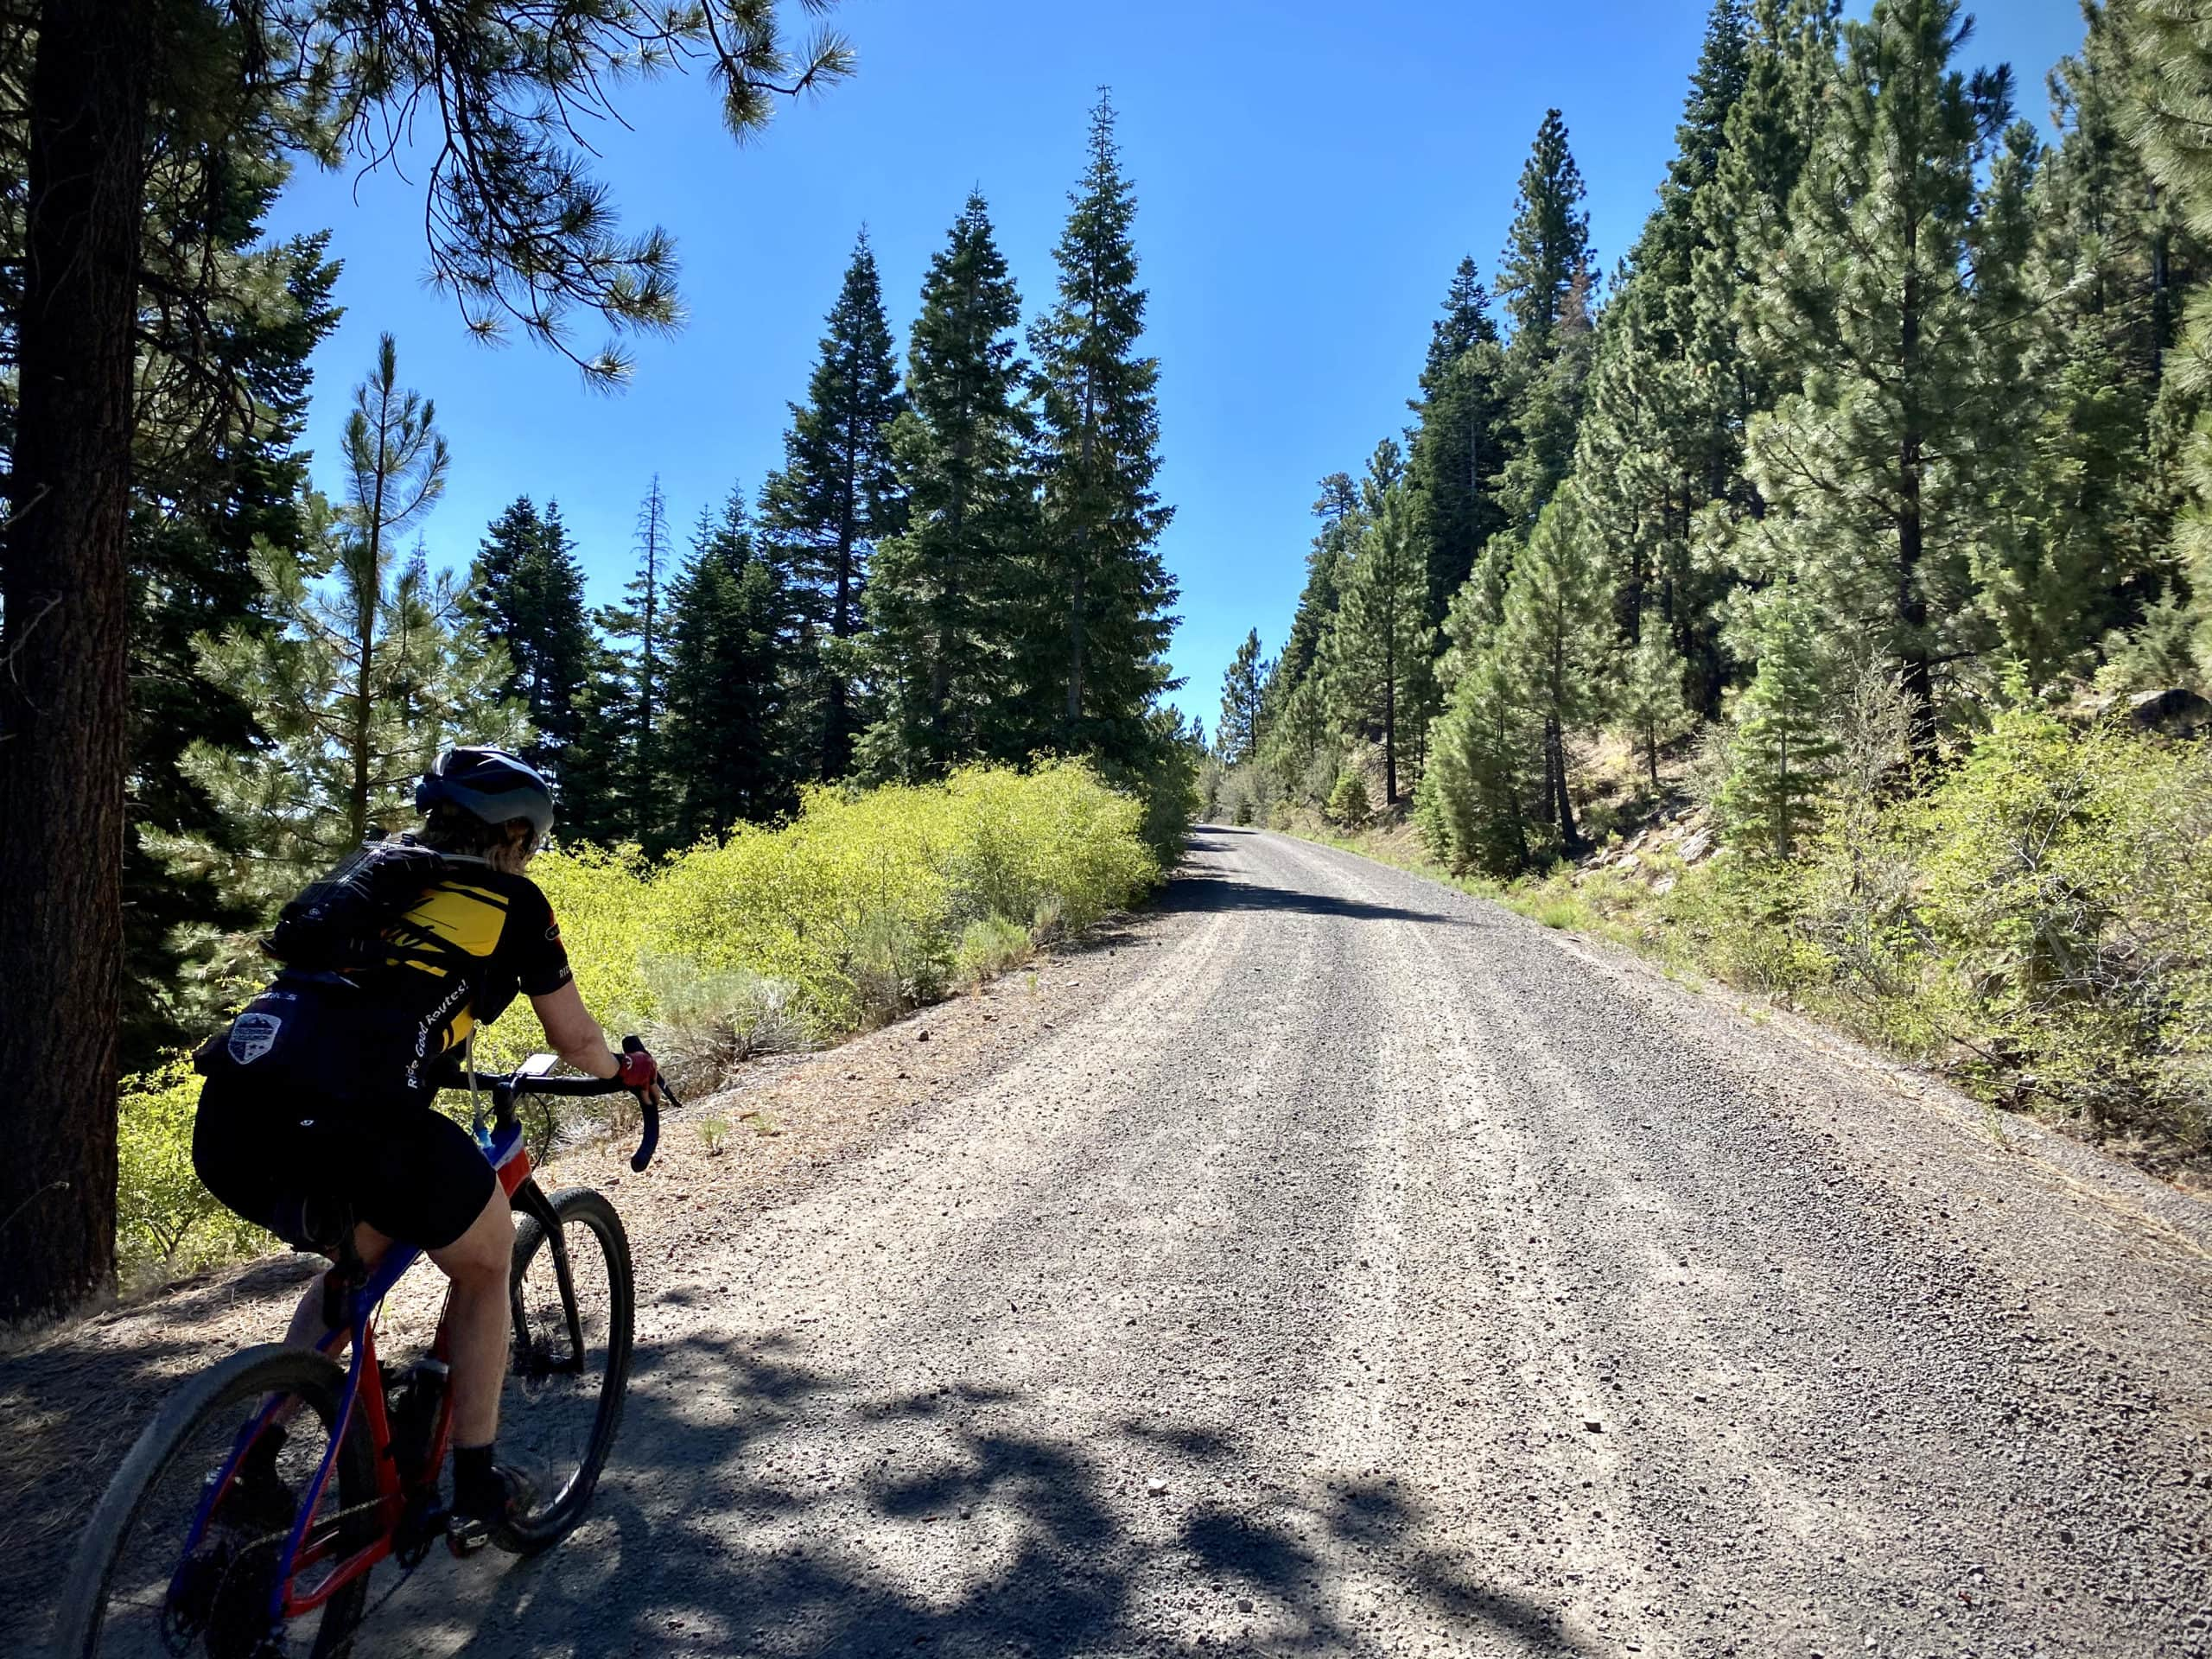 Cyclist on gravel road in the Fremont National Forest.